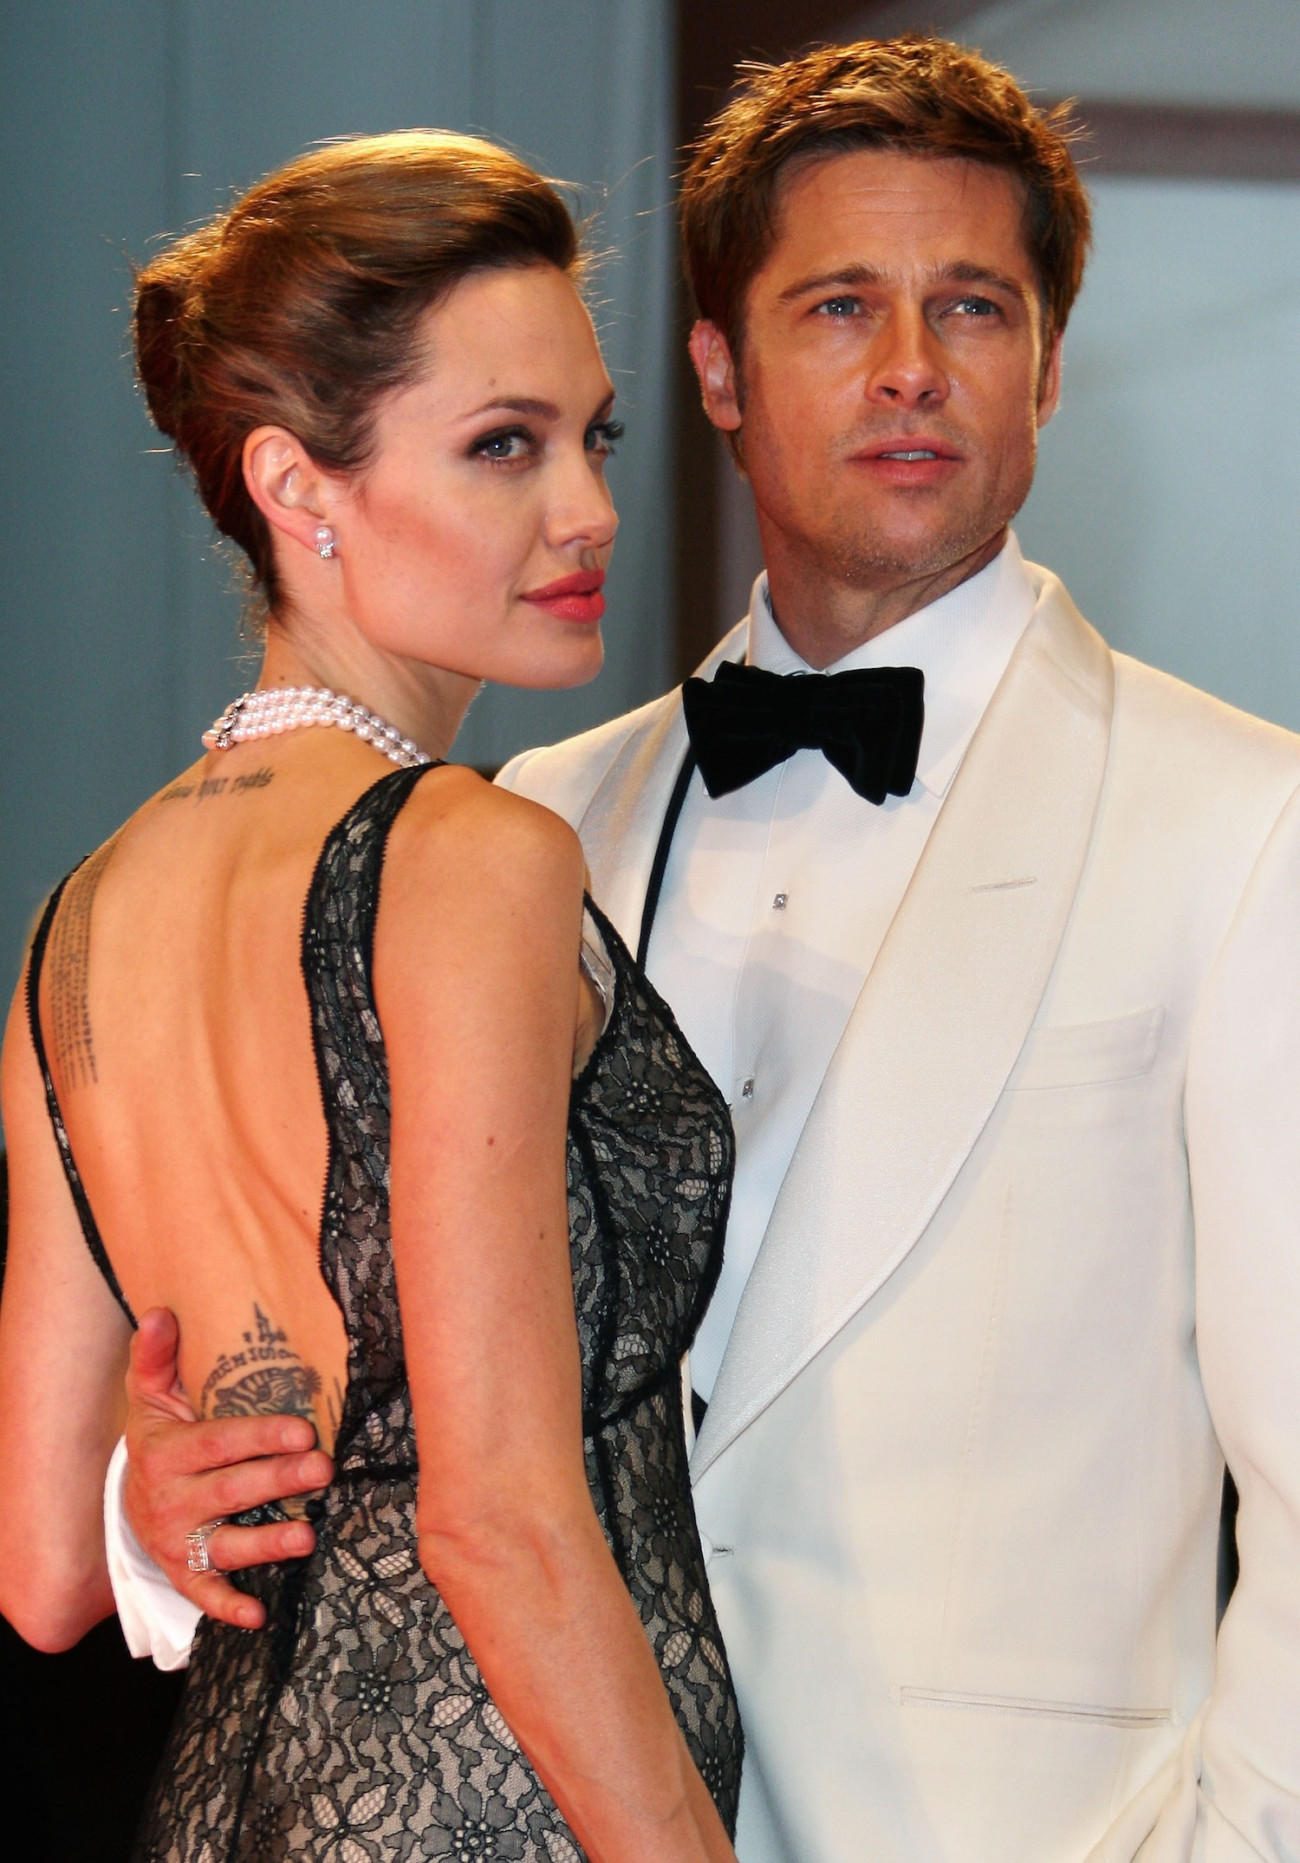 VENICE, ITALY - SEPTEMBER 02:  Angelina Jolie and Brad Pitt attend the The Assassination of Jesse James by the Coward Robert Ford premiere on the Day 5 of the 64th Annual Venice Film Festival on September 2, 2007 in Venice, Italy.  (Photo by MJ Kim/Getty Images)